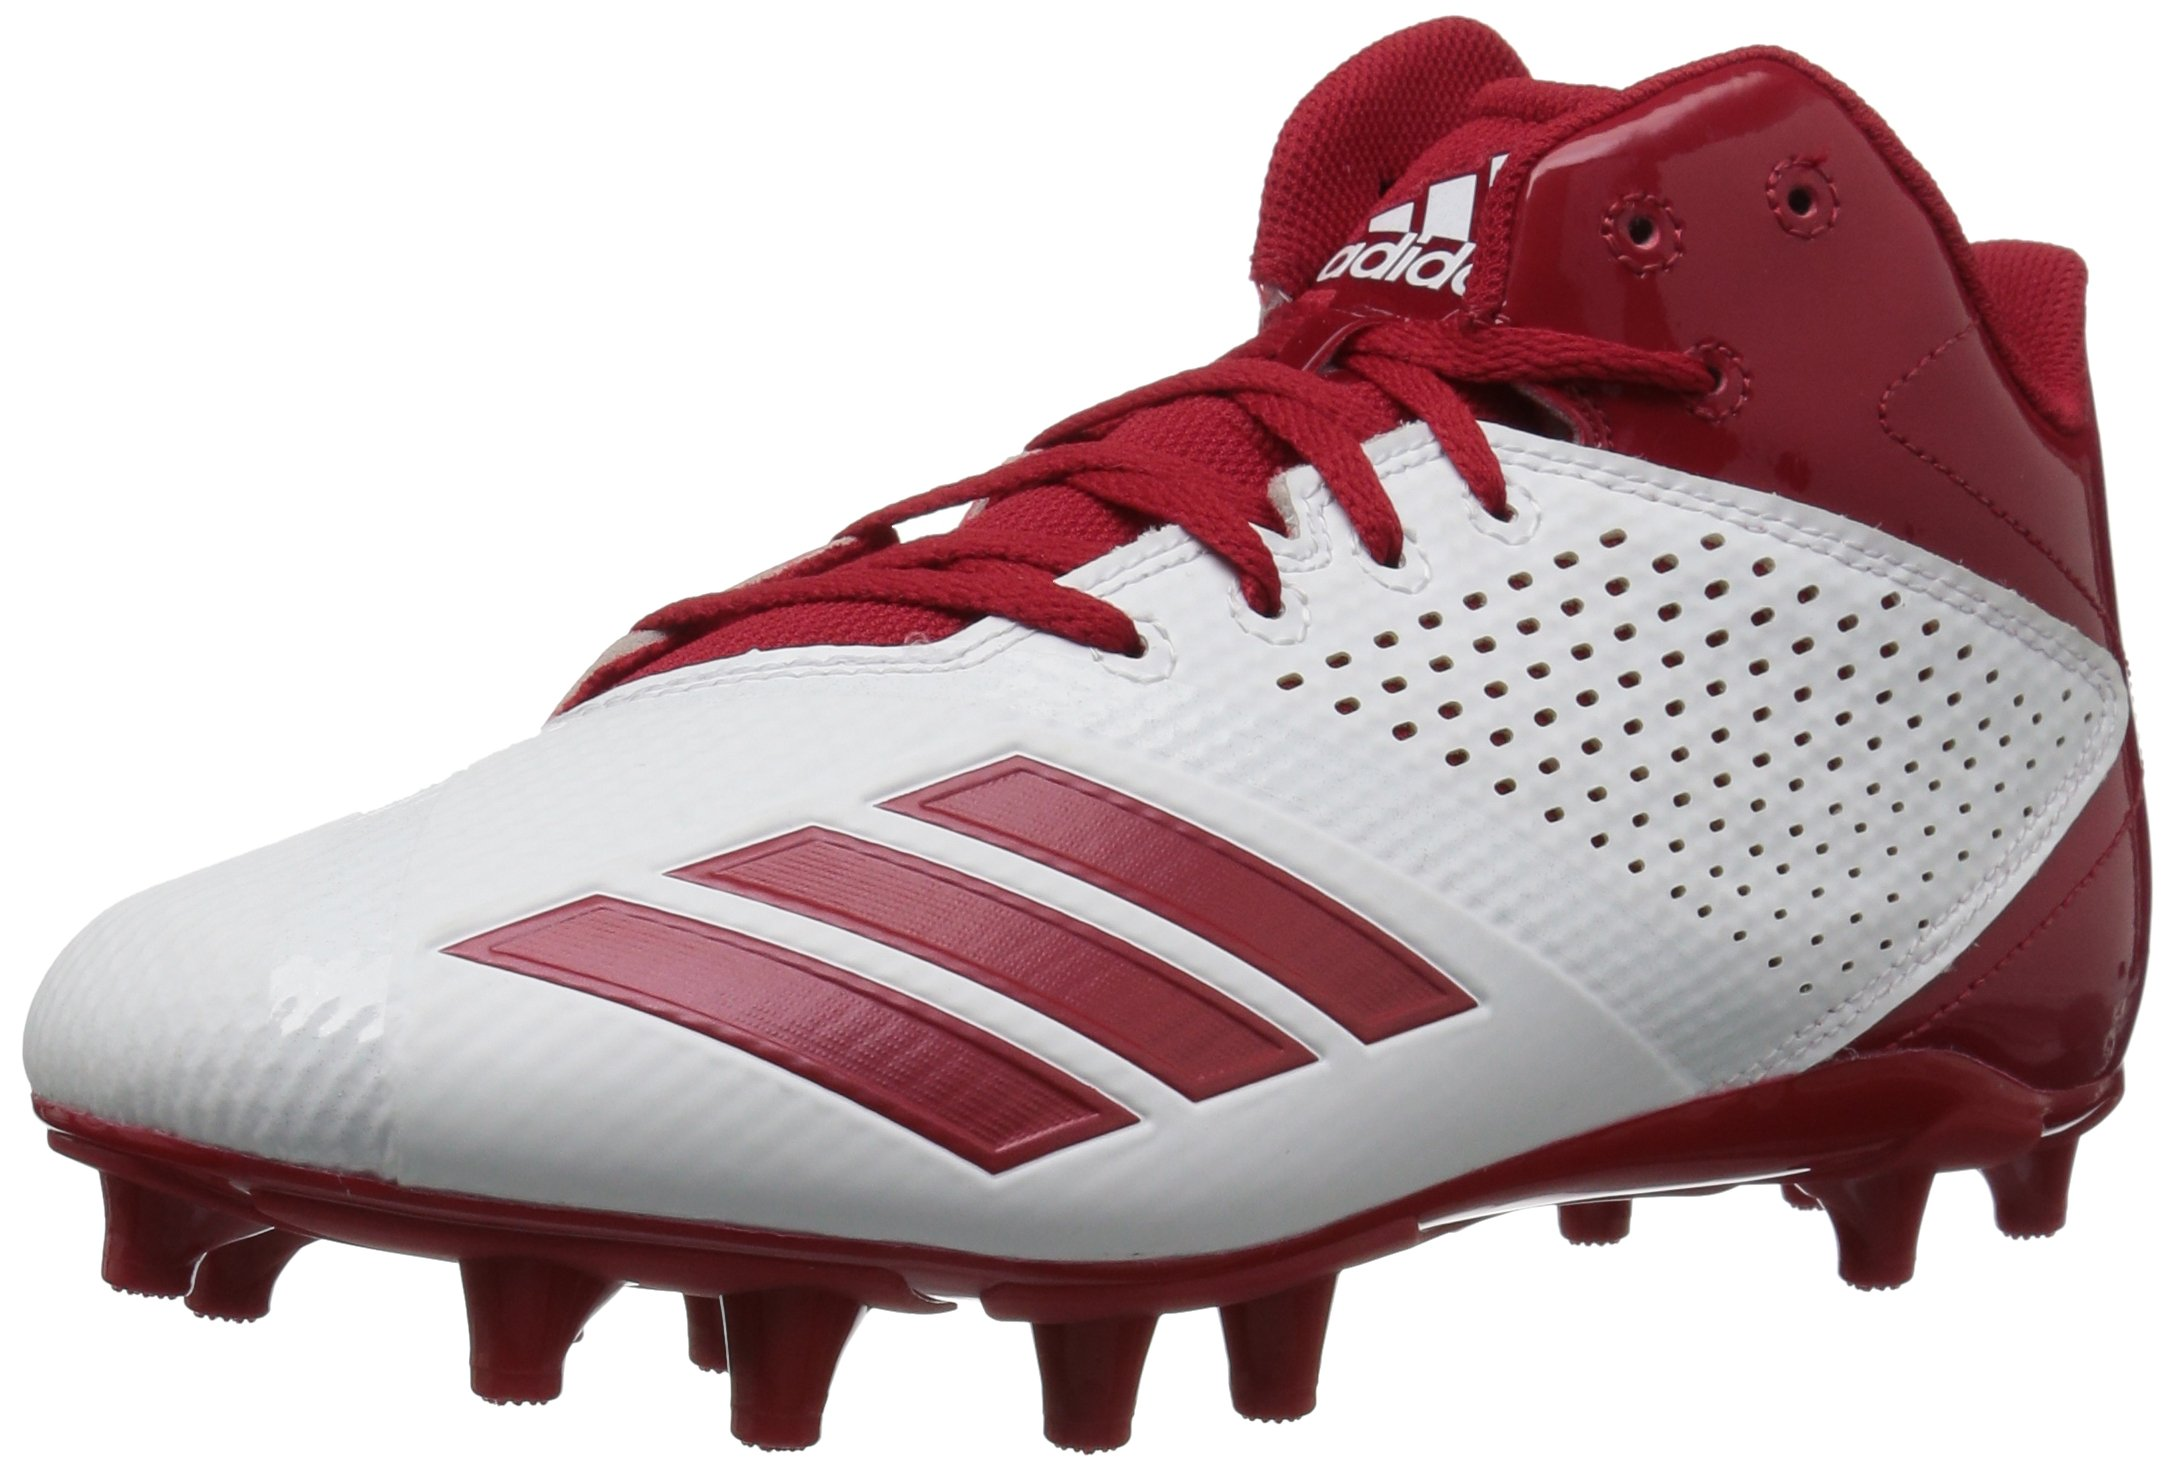 adidas Men's 5.5 Star Mid Football Shoe, Black/Power Red/Power Red, 8.5 M US by adidas